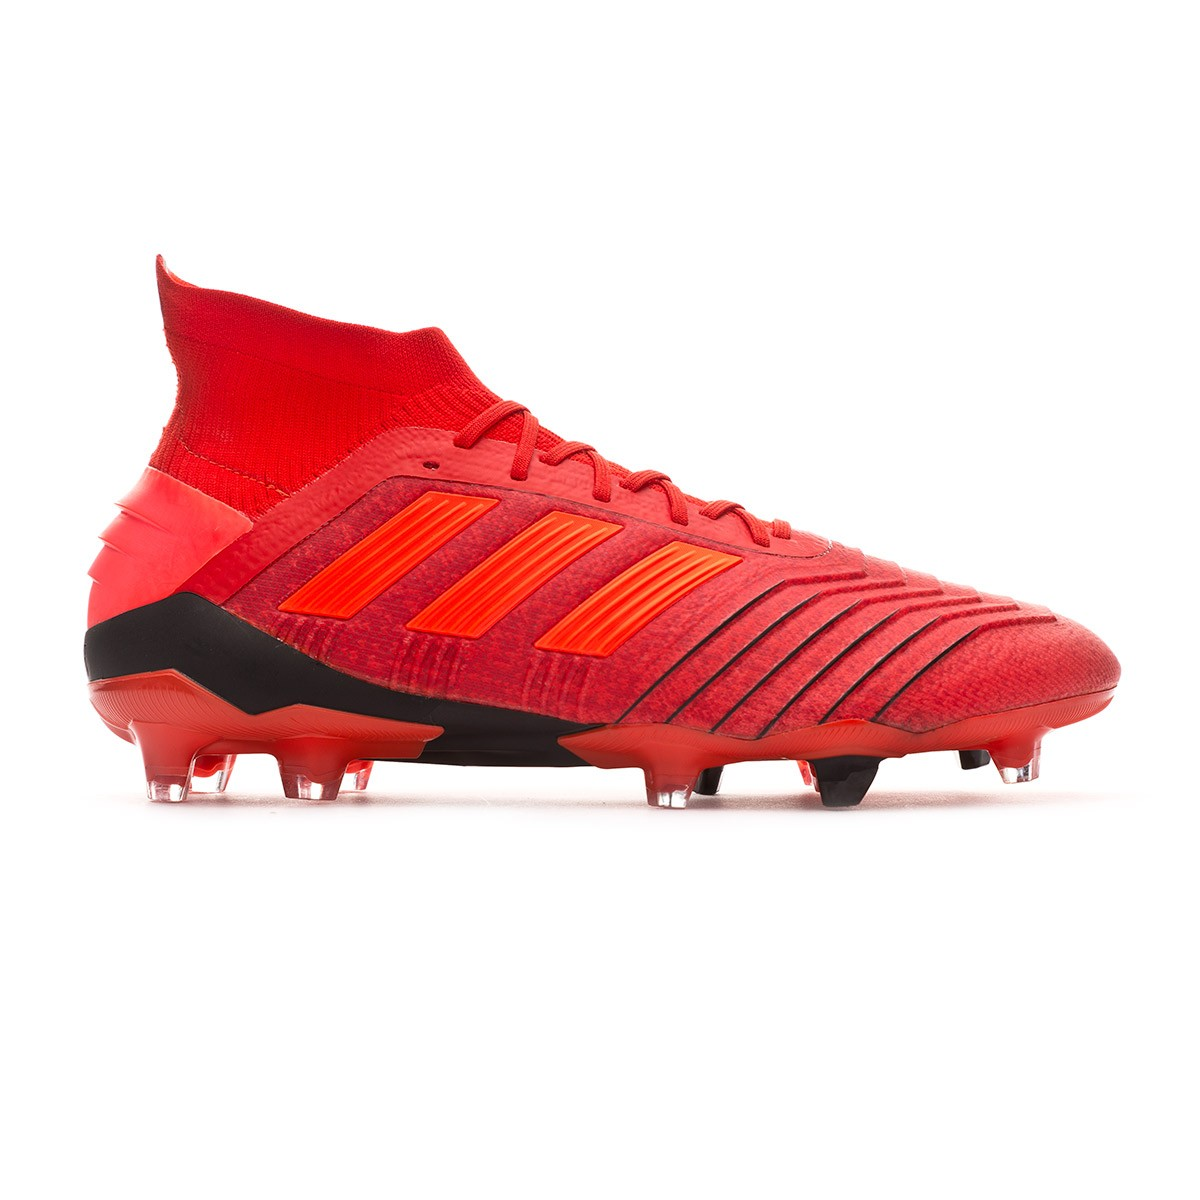 online store 931d5 b1b49 Boot adidas Predator 19.1 FG Active red-Solar red-Core black - Football  store Fútbol Emotion